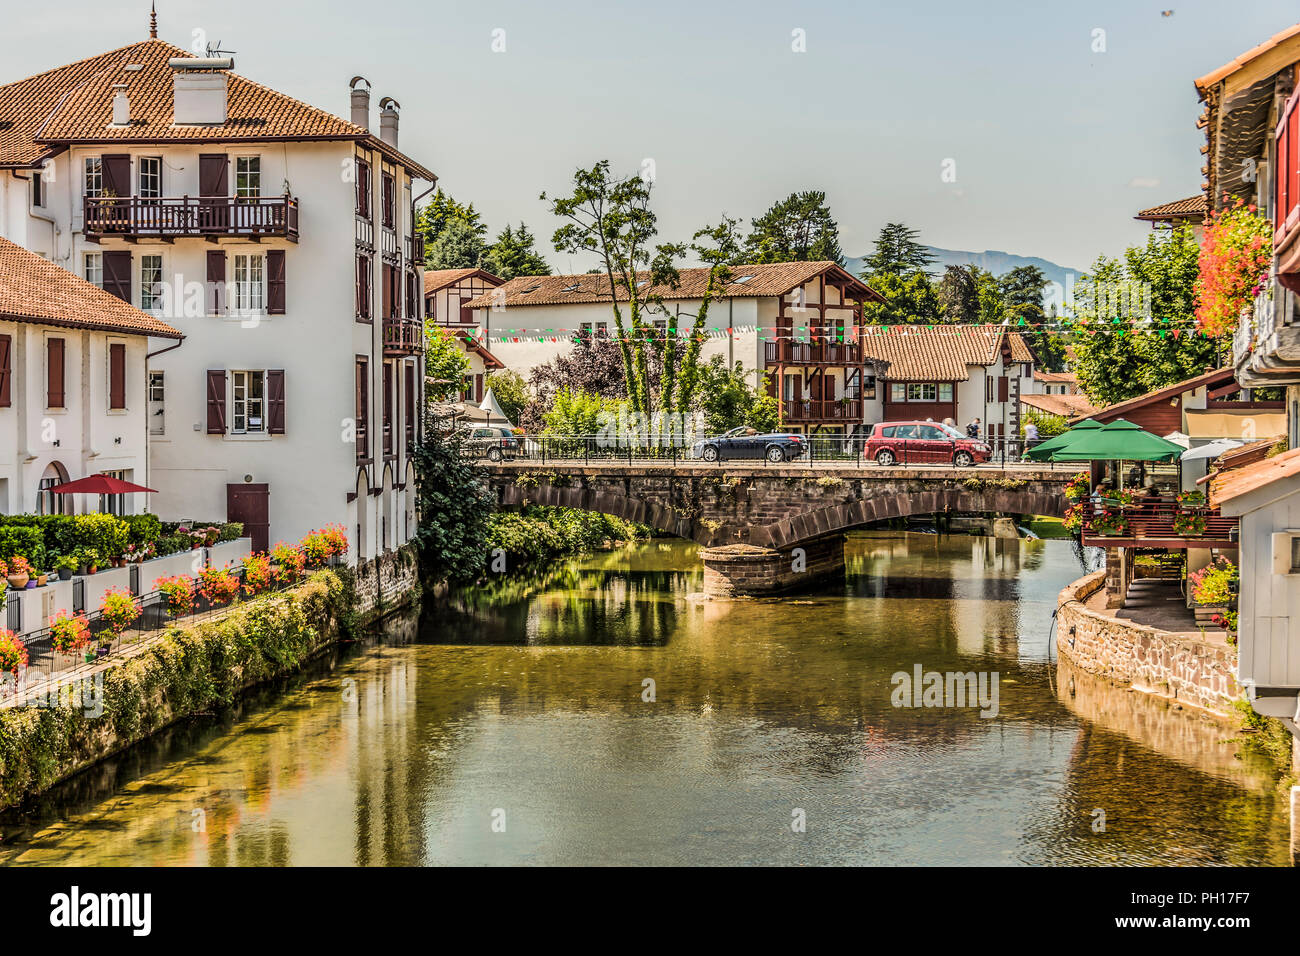 Saint Jean Pied De Port Bridge Of The Main Street Of The Village Saint Jean Pied De Port